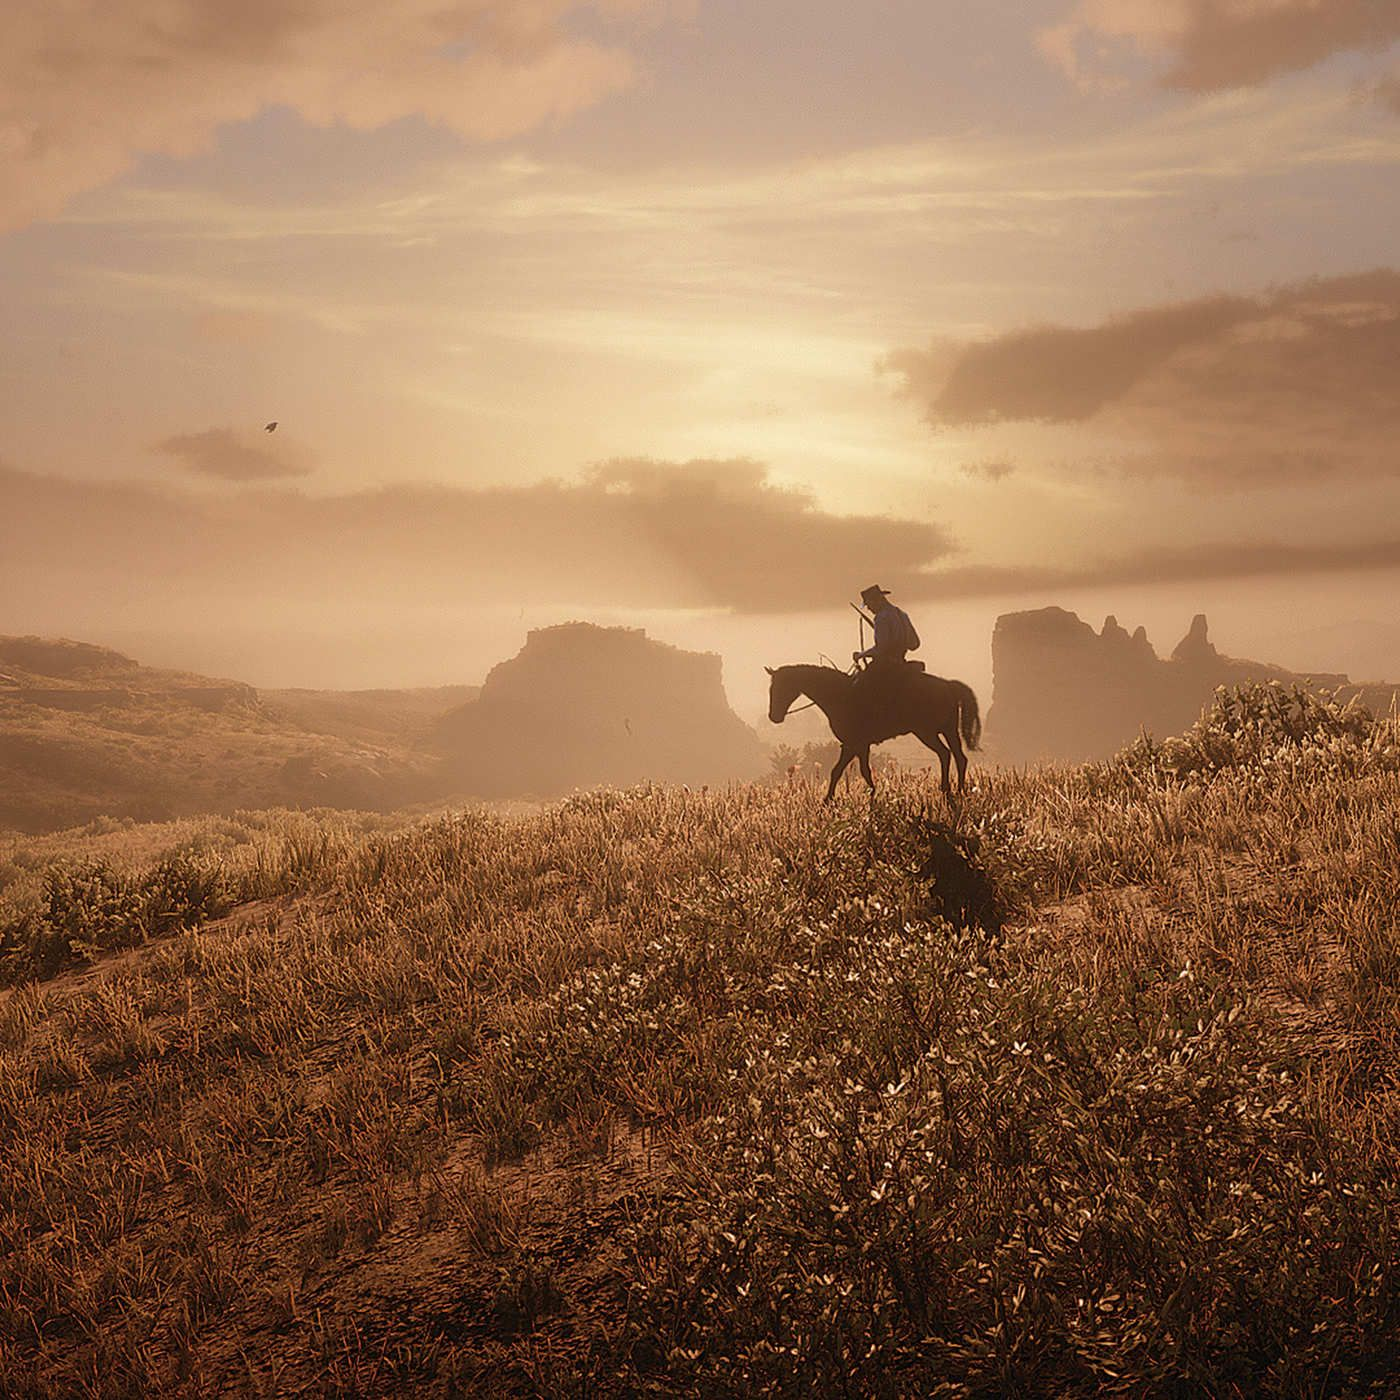 The Making Of Rockstar Games Red Dead Redemption 2 Red Dead Redemption Artwork Red Dead Redemption Art Red Dead Redemption